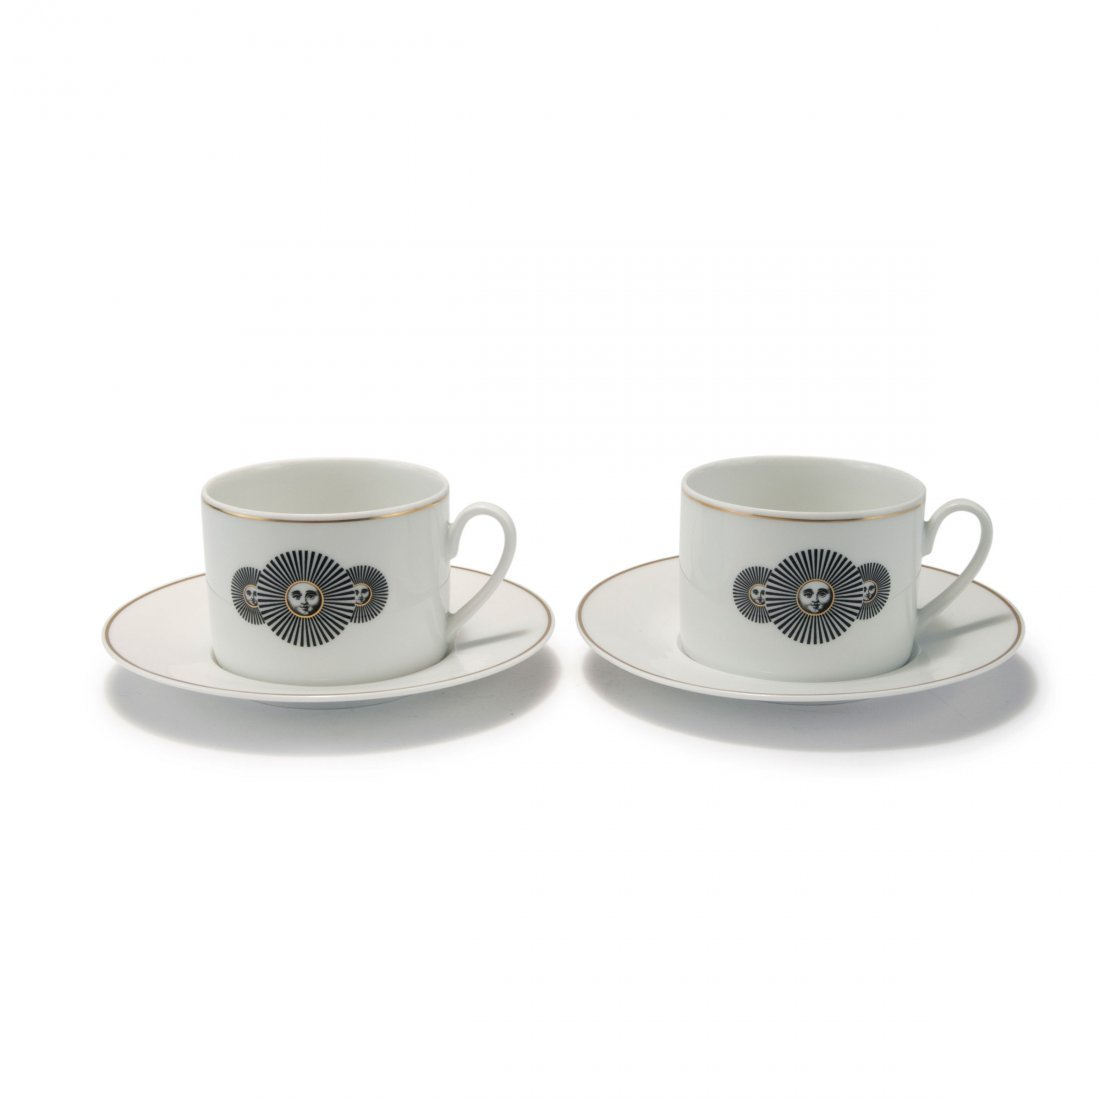 Two 'Soli' cups and saucers, 1990s